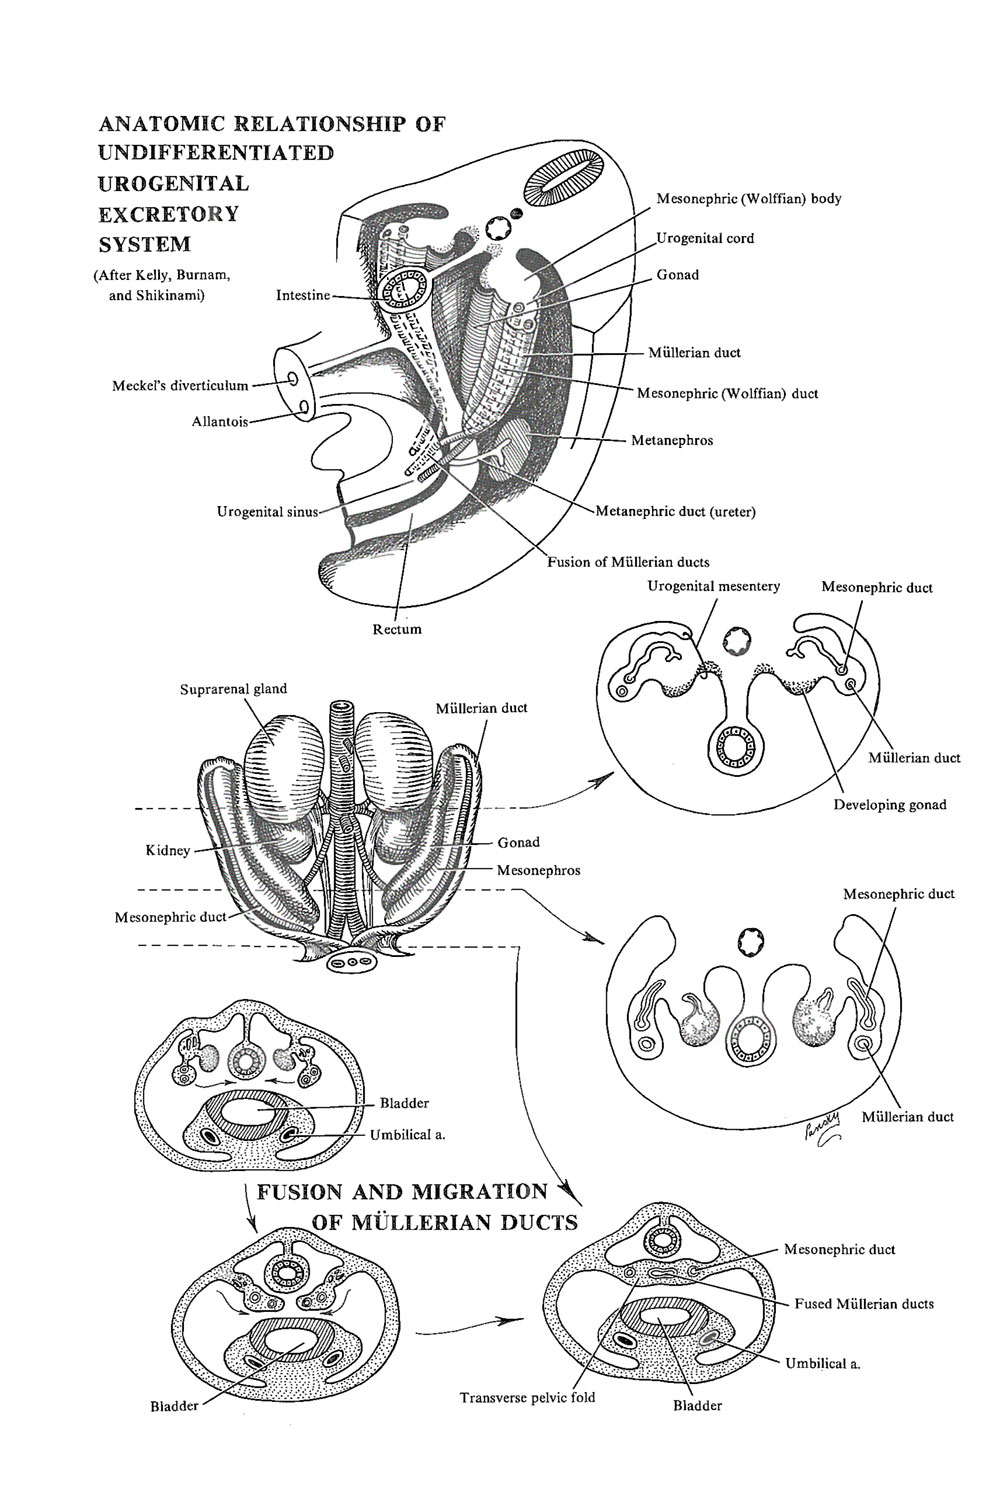 the genital or reproductive system: primive genital tracts and  sex determination: image #1